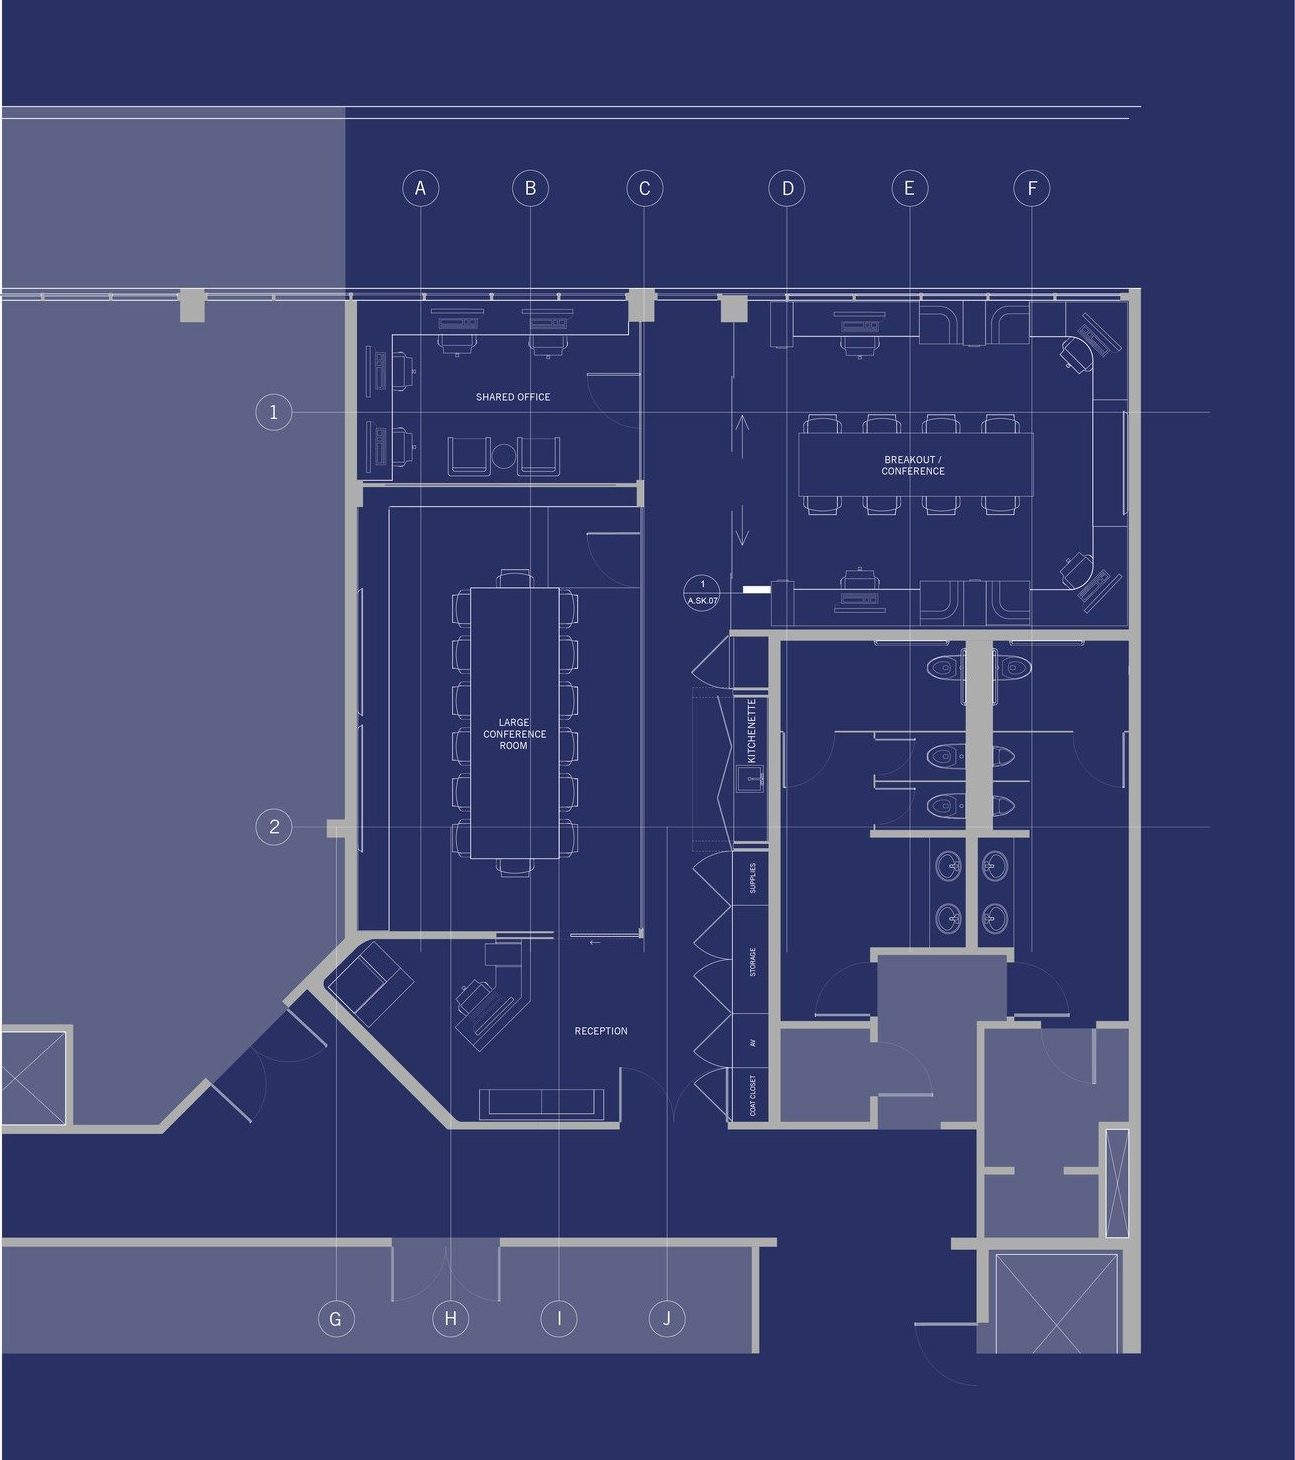 Tasso-Street-Central-Floor-Plan-WEB_rotated-e1534182527833 strategic design consultancy